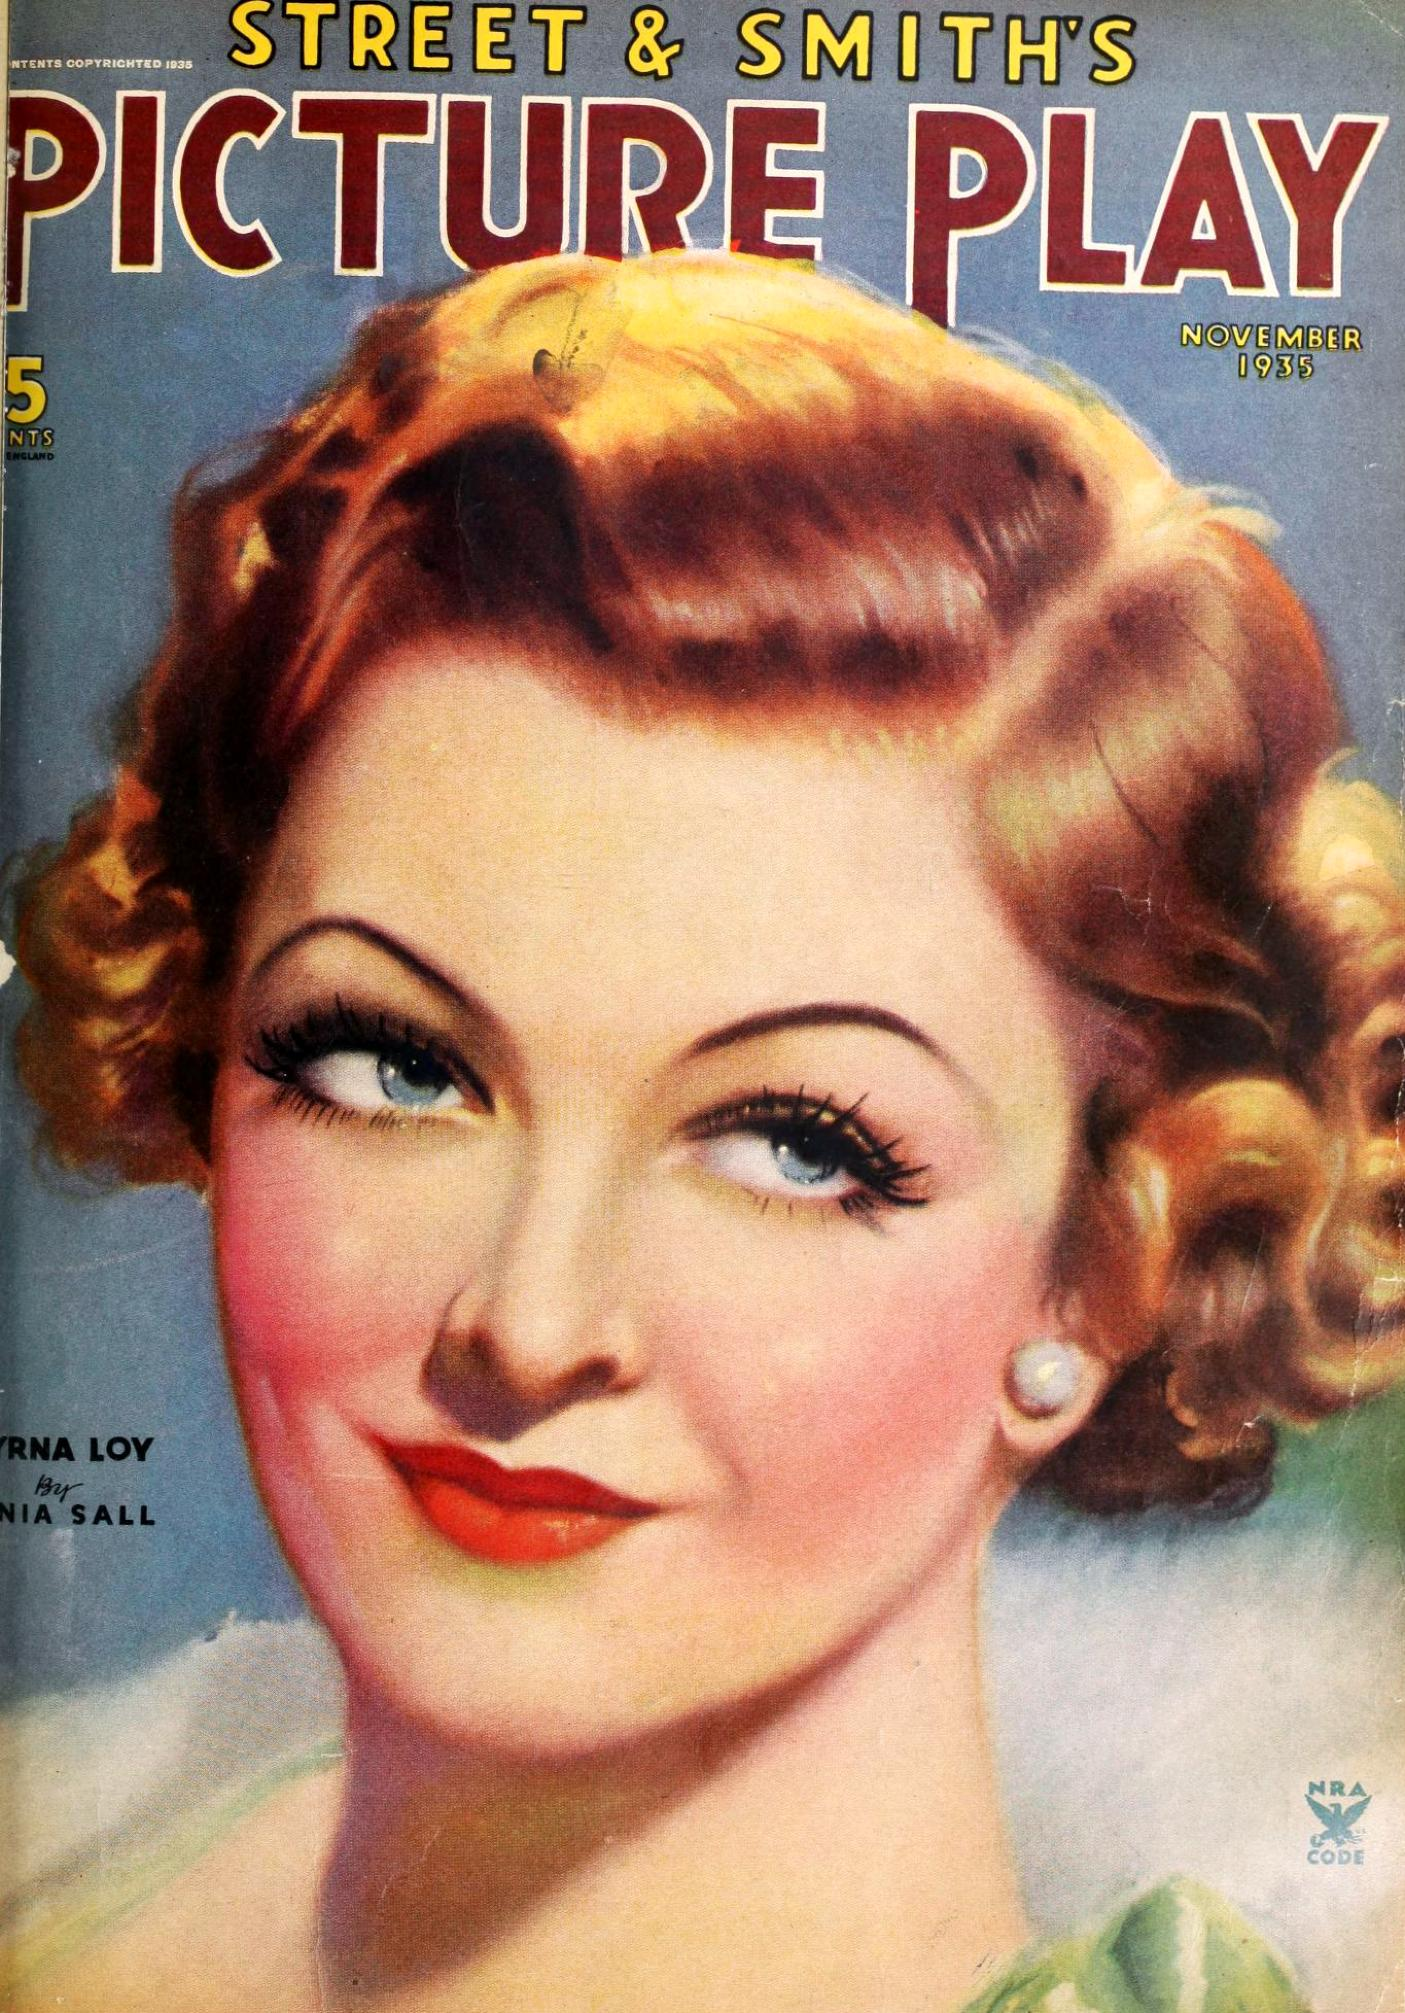 myrna loy picture play november 1935 cover large